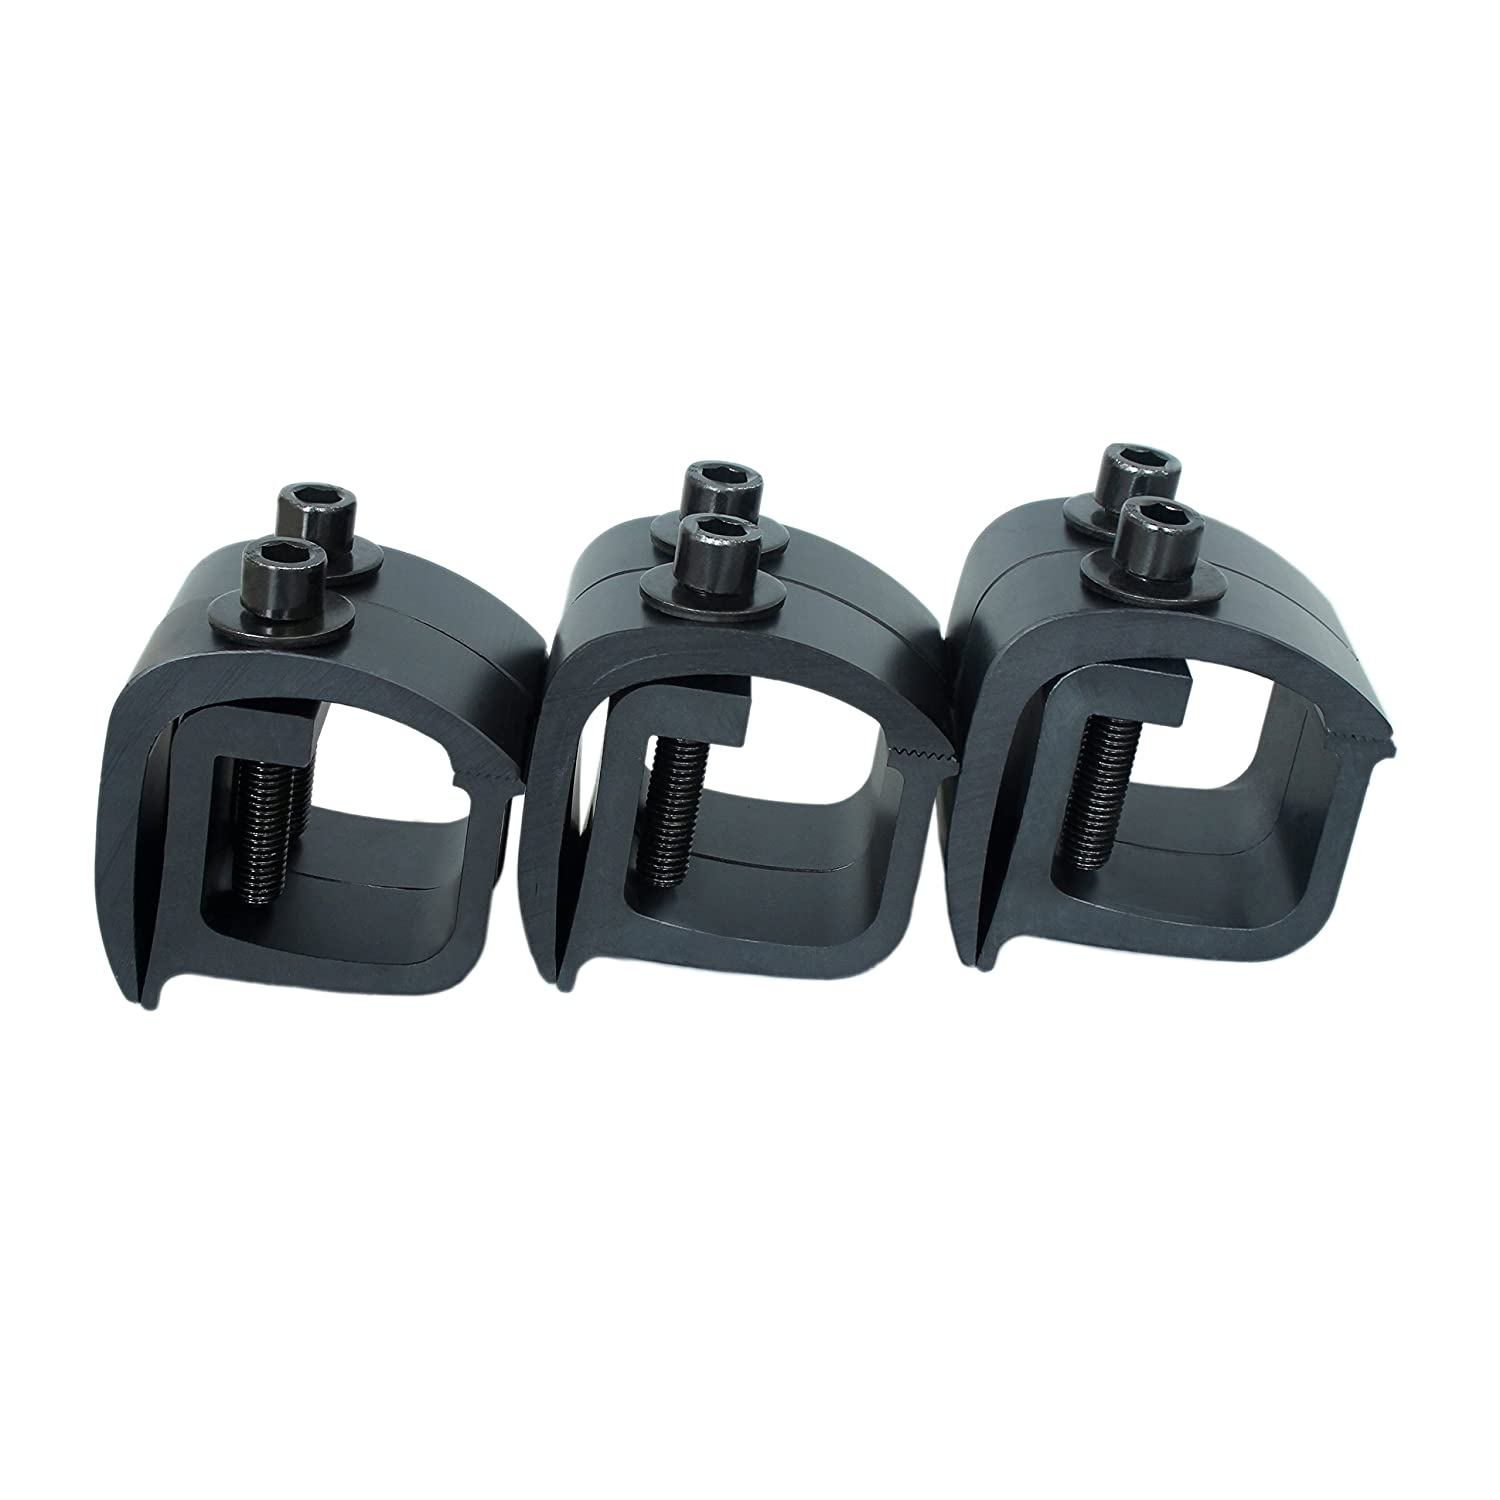 AA-Racks P-AC(4)-09 Set of 4 Aluminum C-Clamps for Non-Drilling Truck Rack & Camper Shell Installation - Black